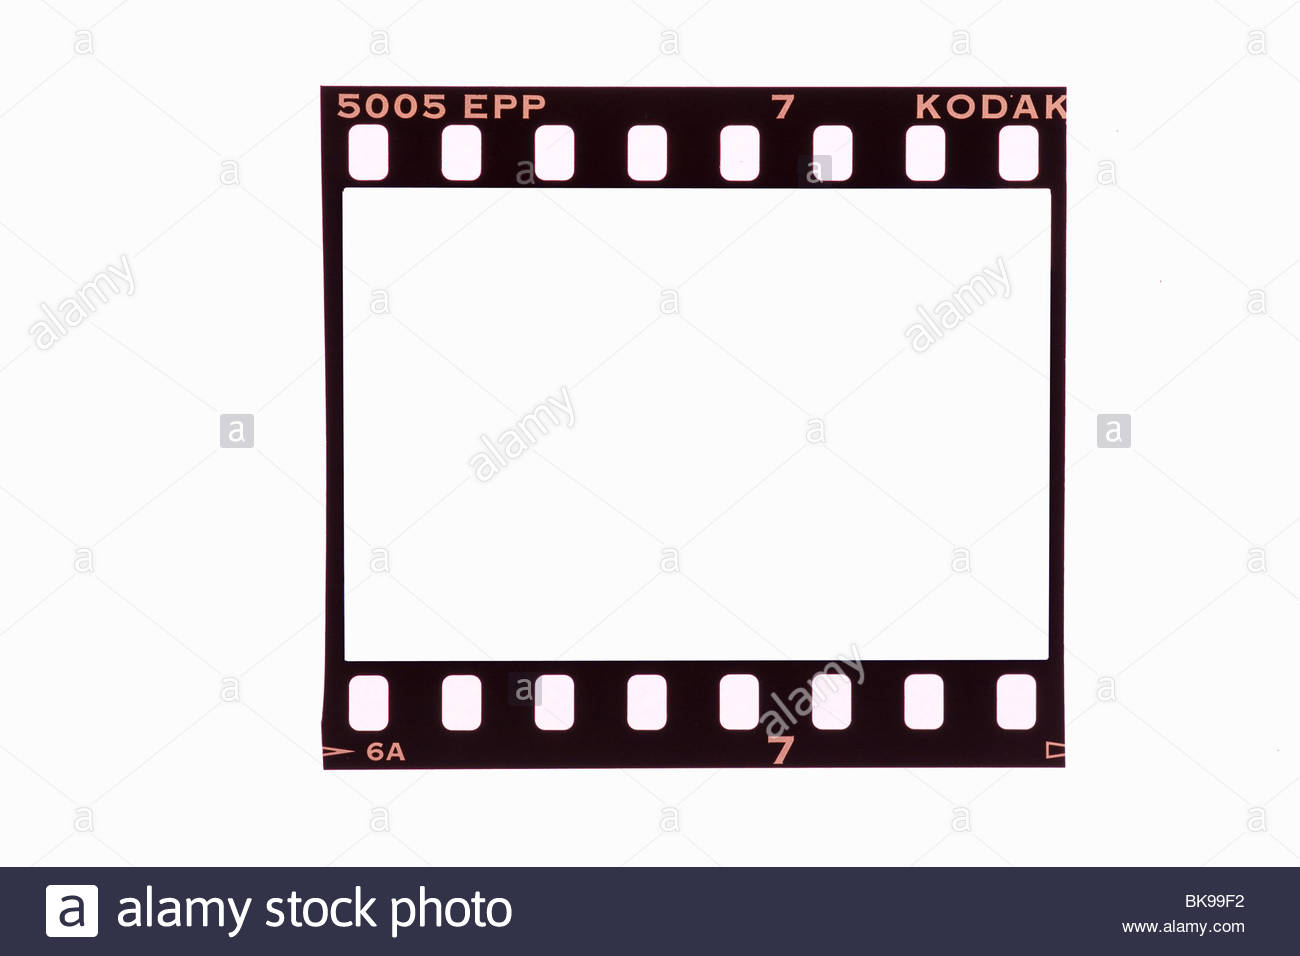 1300x956 35mm Film Strip Frame Cut Out Stock Photo, Royalty Free Image